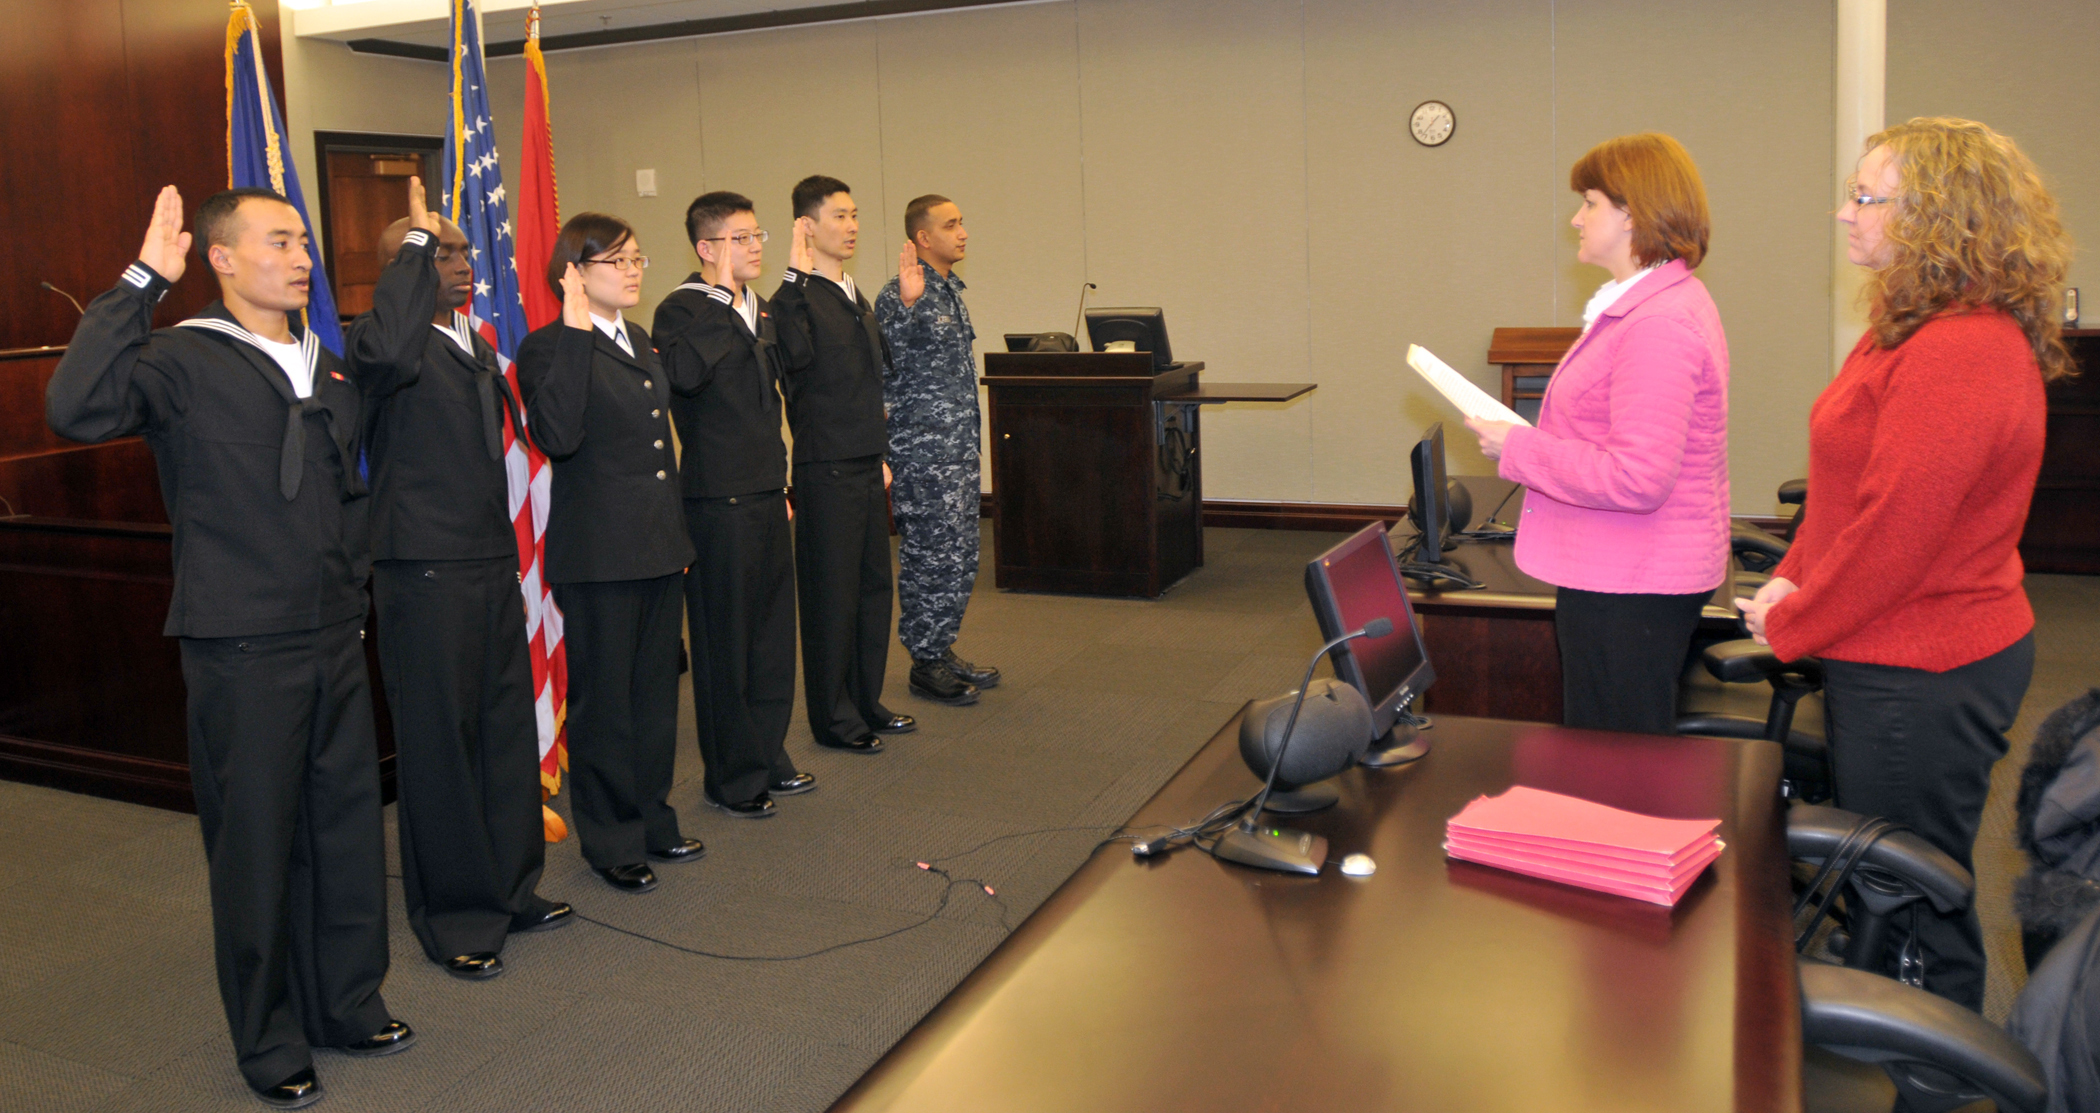 Caption: The first Navy sailors to participate in the MAVNI program take their oath of citizenship in this 2010 file photo. MAVNI has been controversial since it began in 2008., Credit:  Scott Thornbloom / U.S. Navy